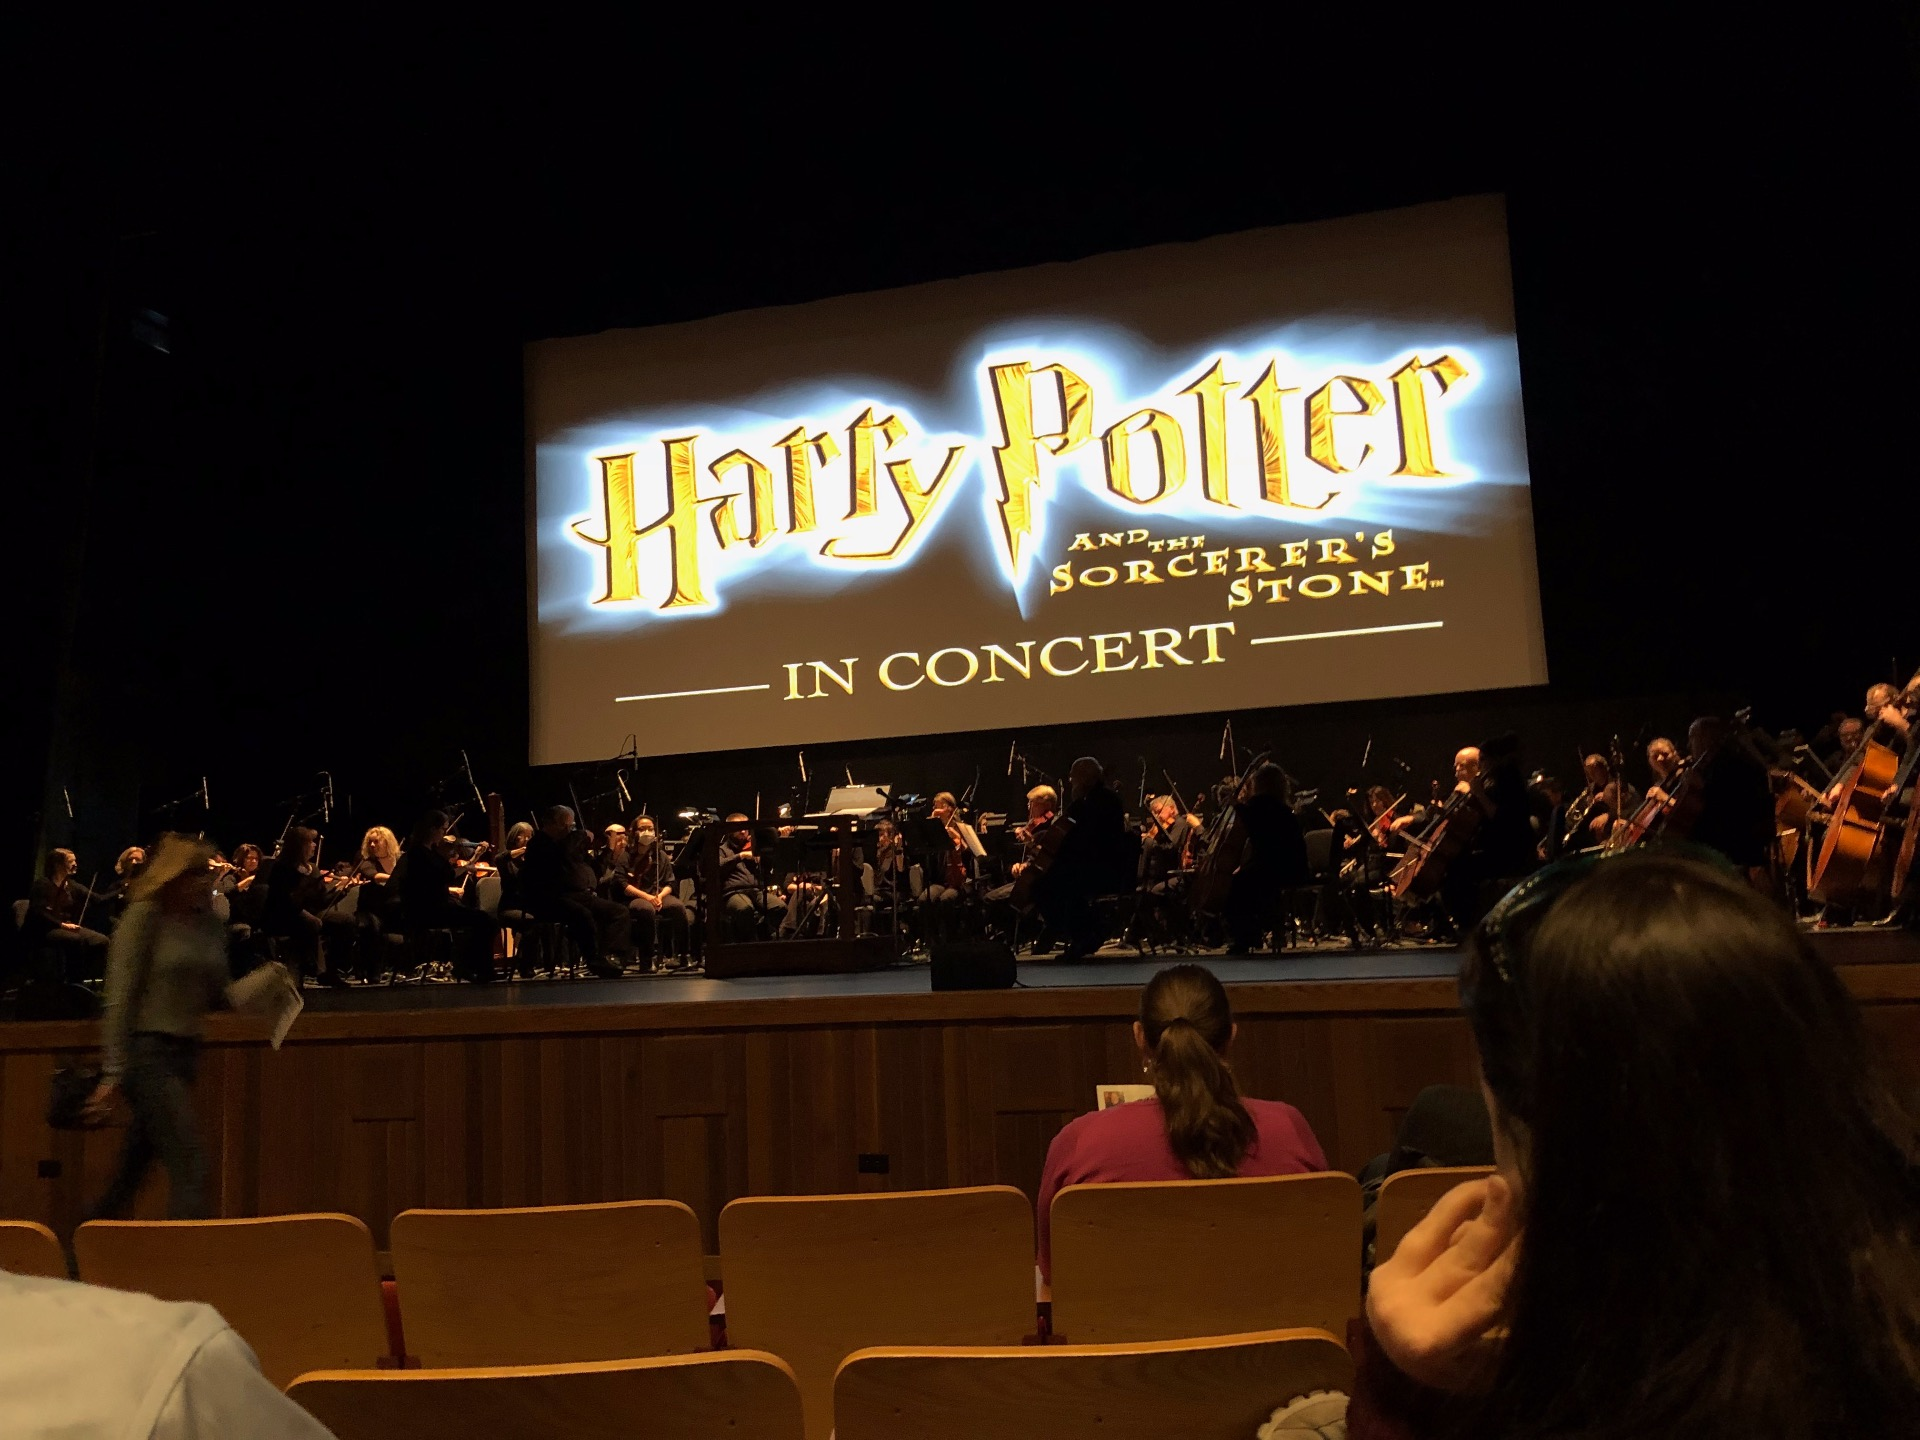 Velma V. Morrison Center for the Performing Arts Section FLR1 Row C Seat 12